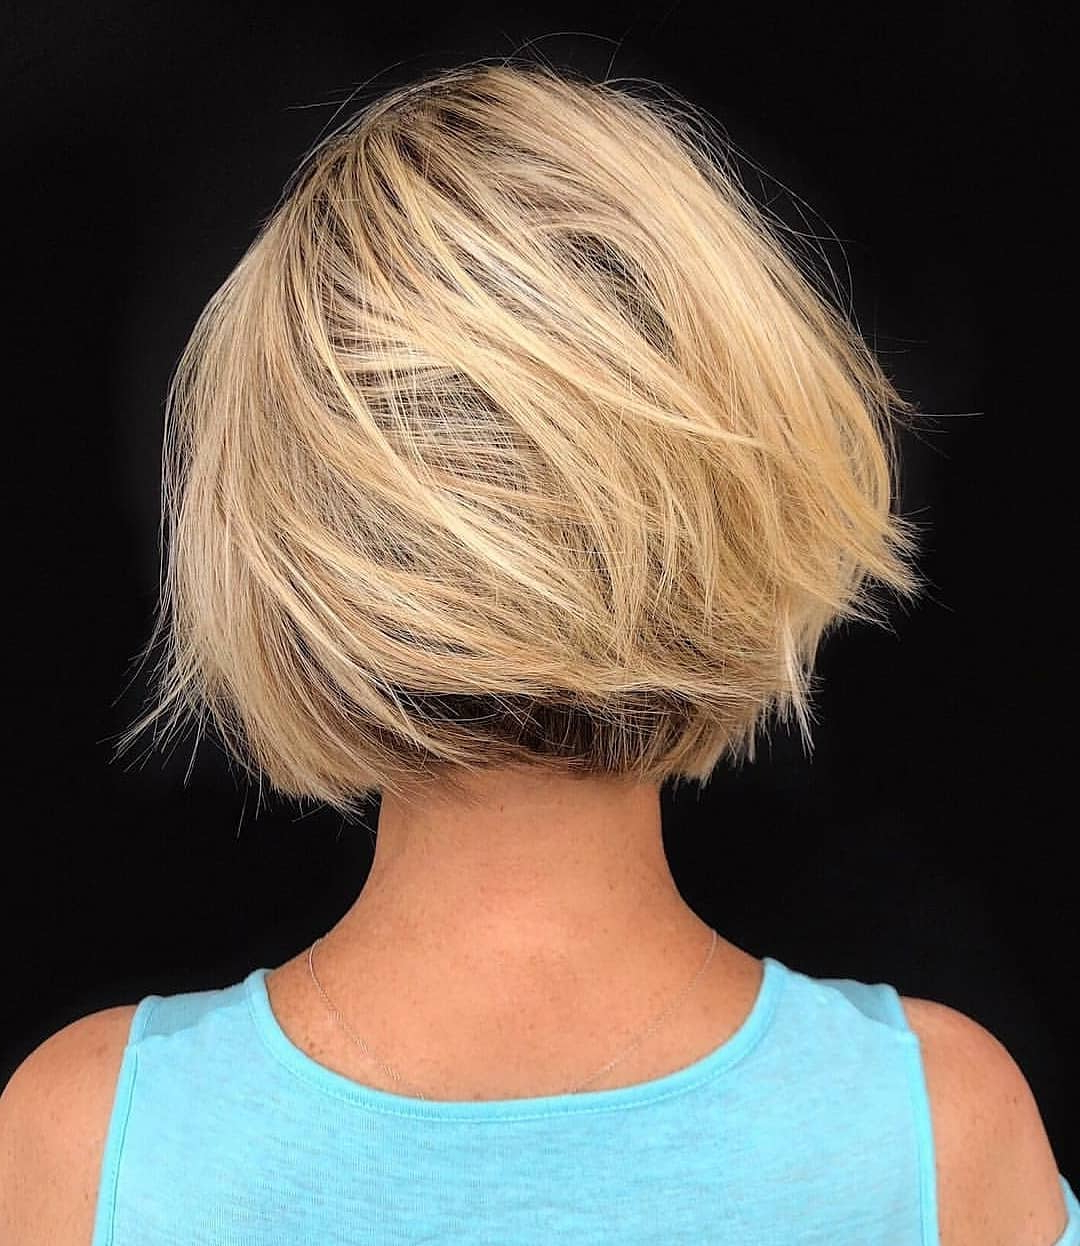 Top 10 Low Maintenance Short Bob Cuts For Thick Hair, Short In No Maintenance Short Haircuts (View 12 of 25)